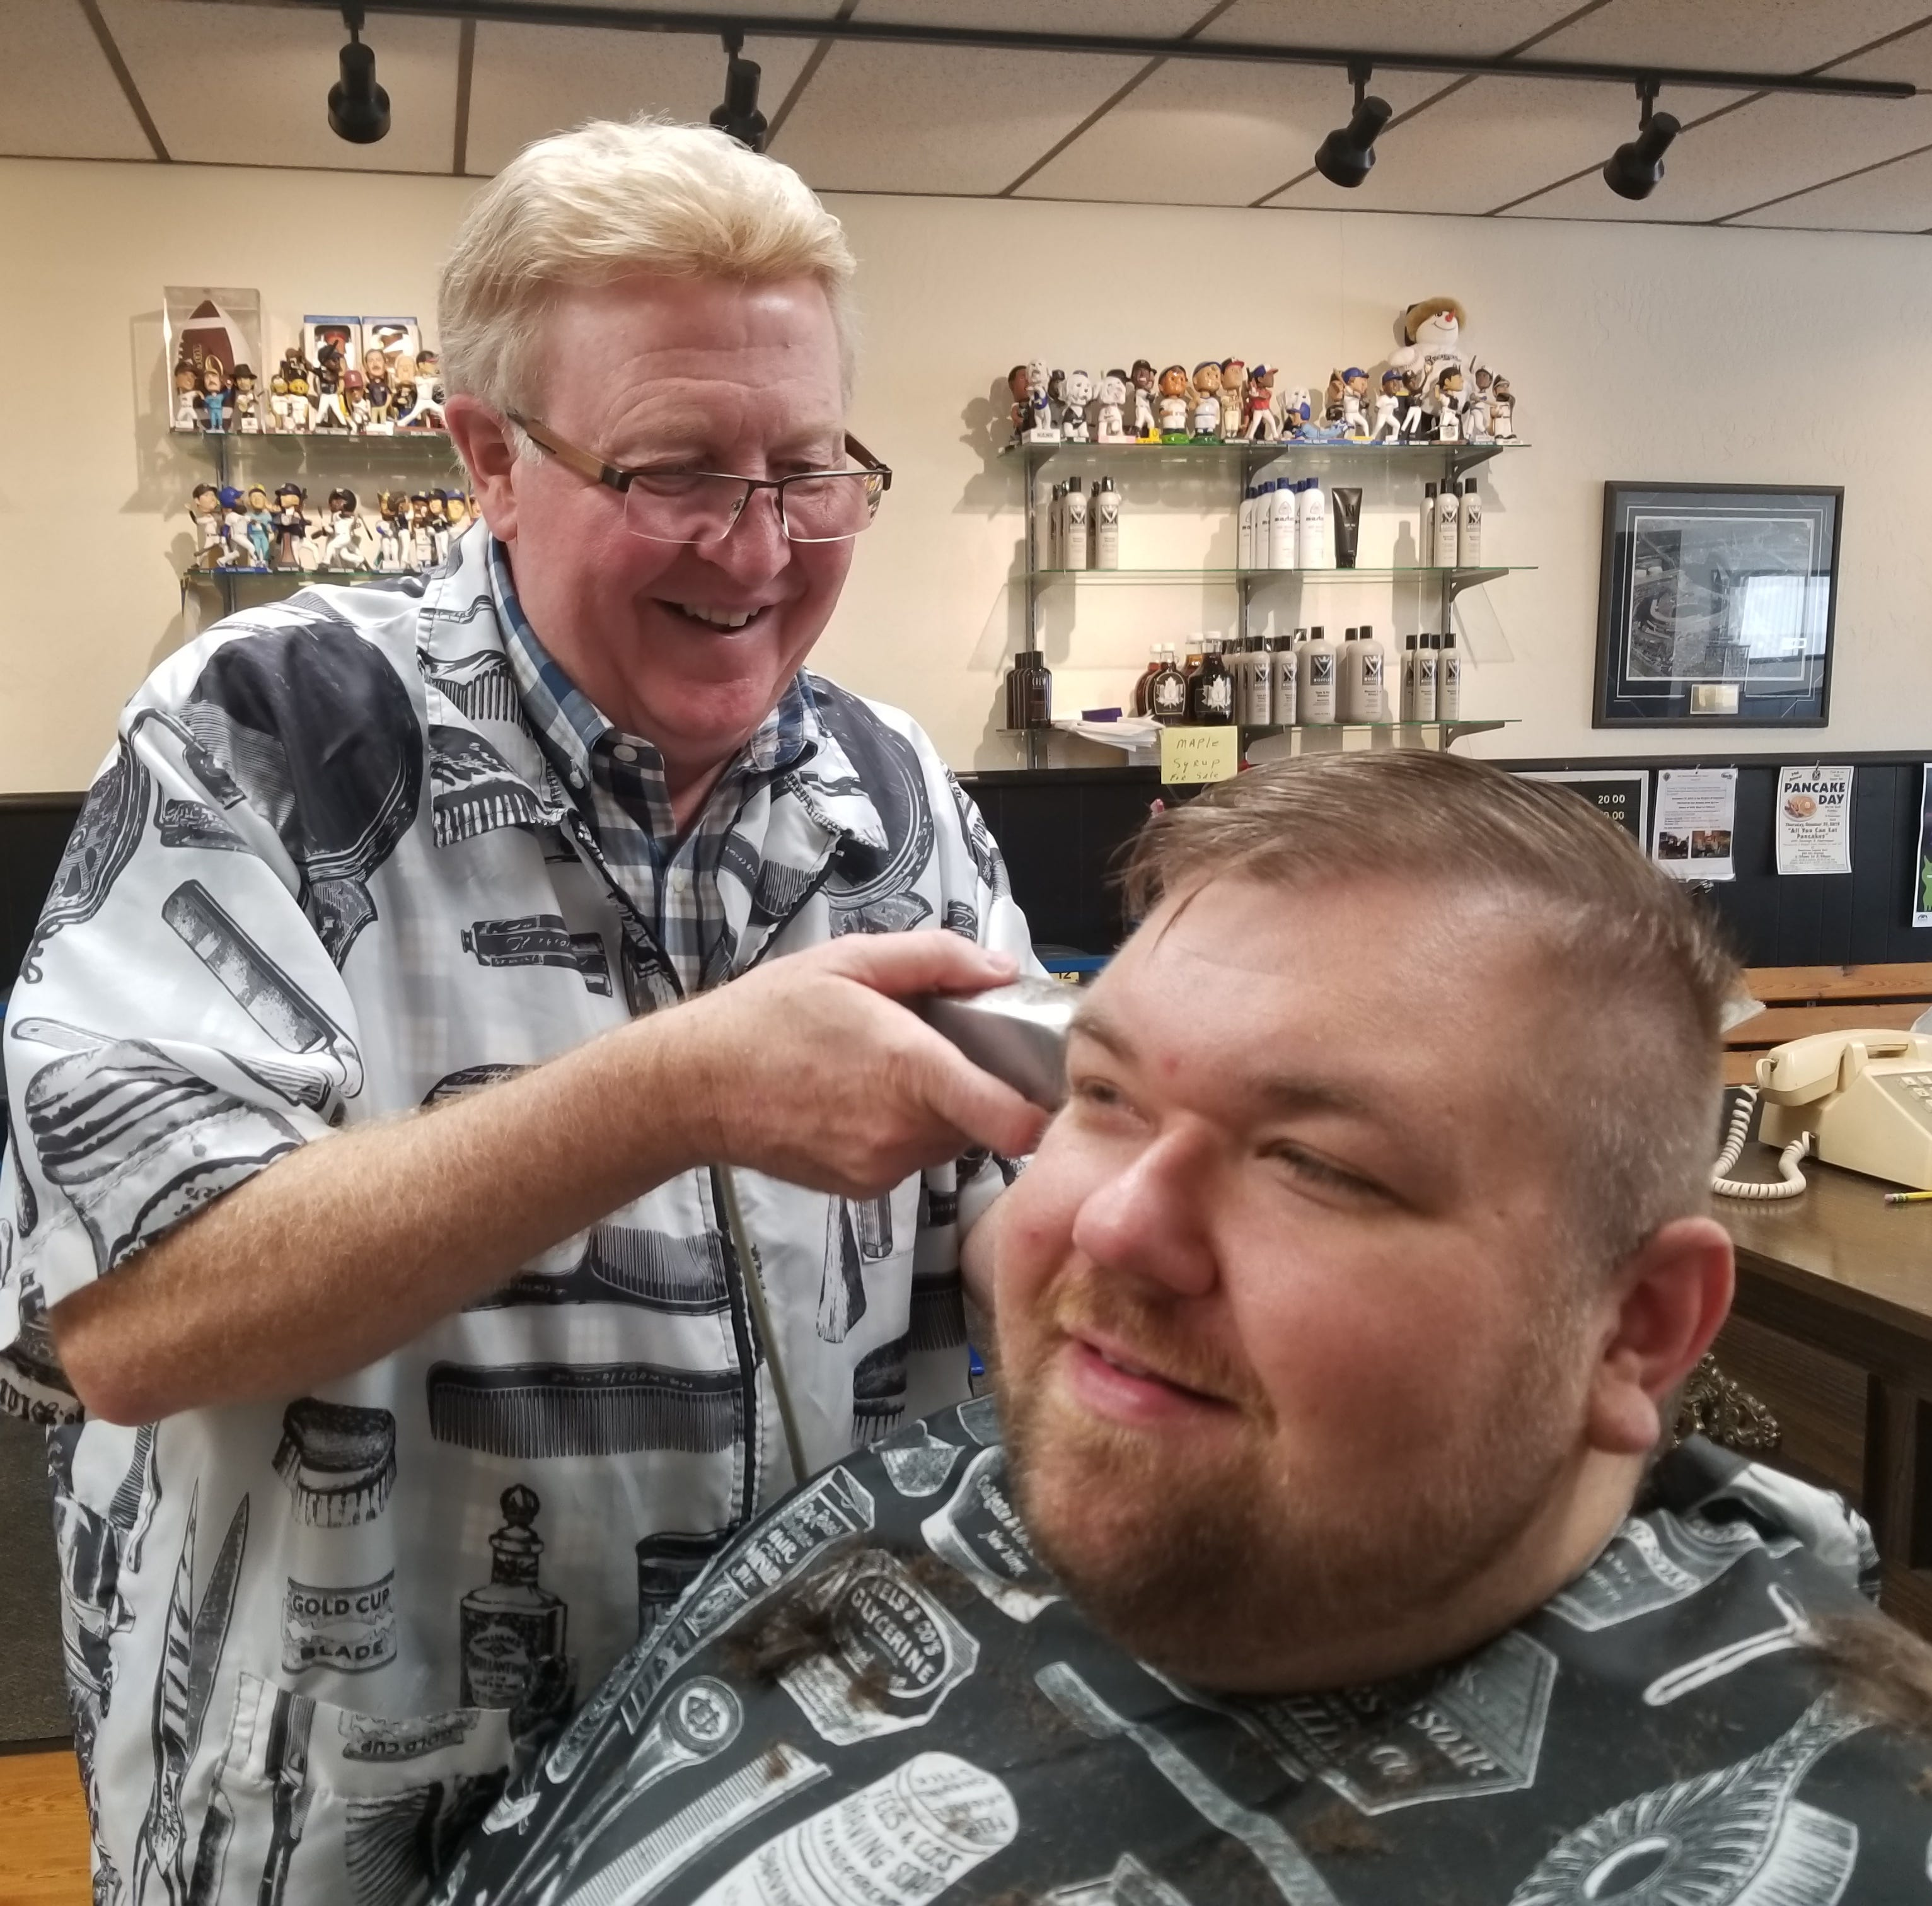 Gary Muellenbach trims generations of styles | Meet Me Downtown